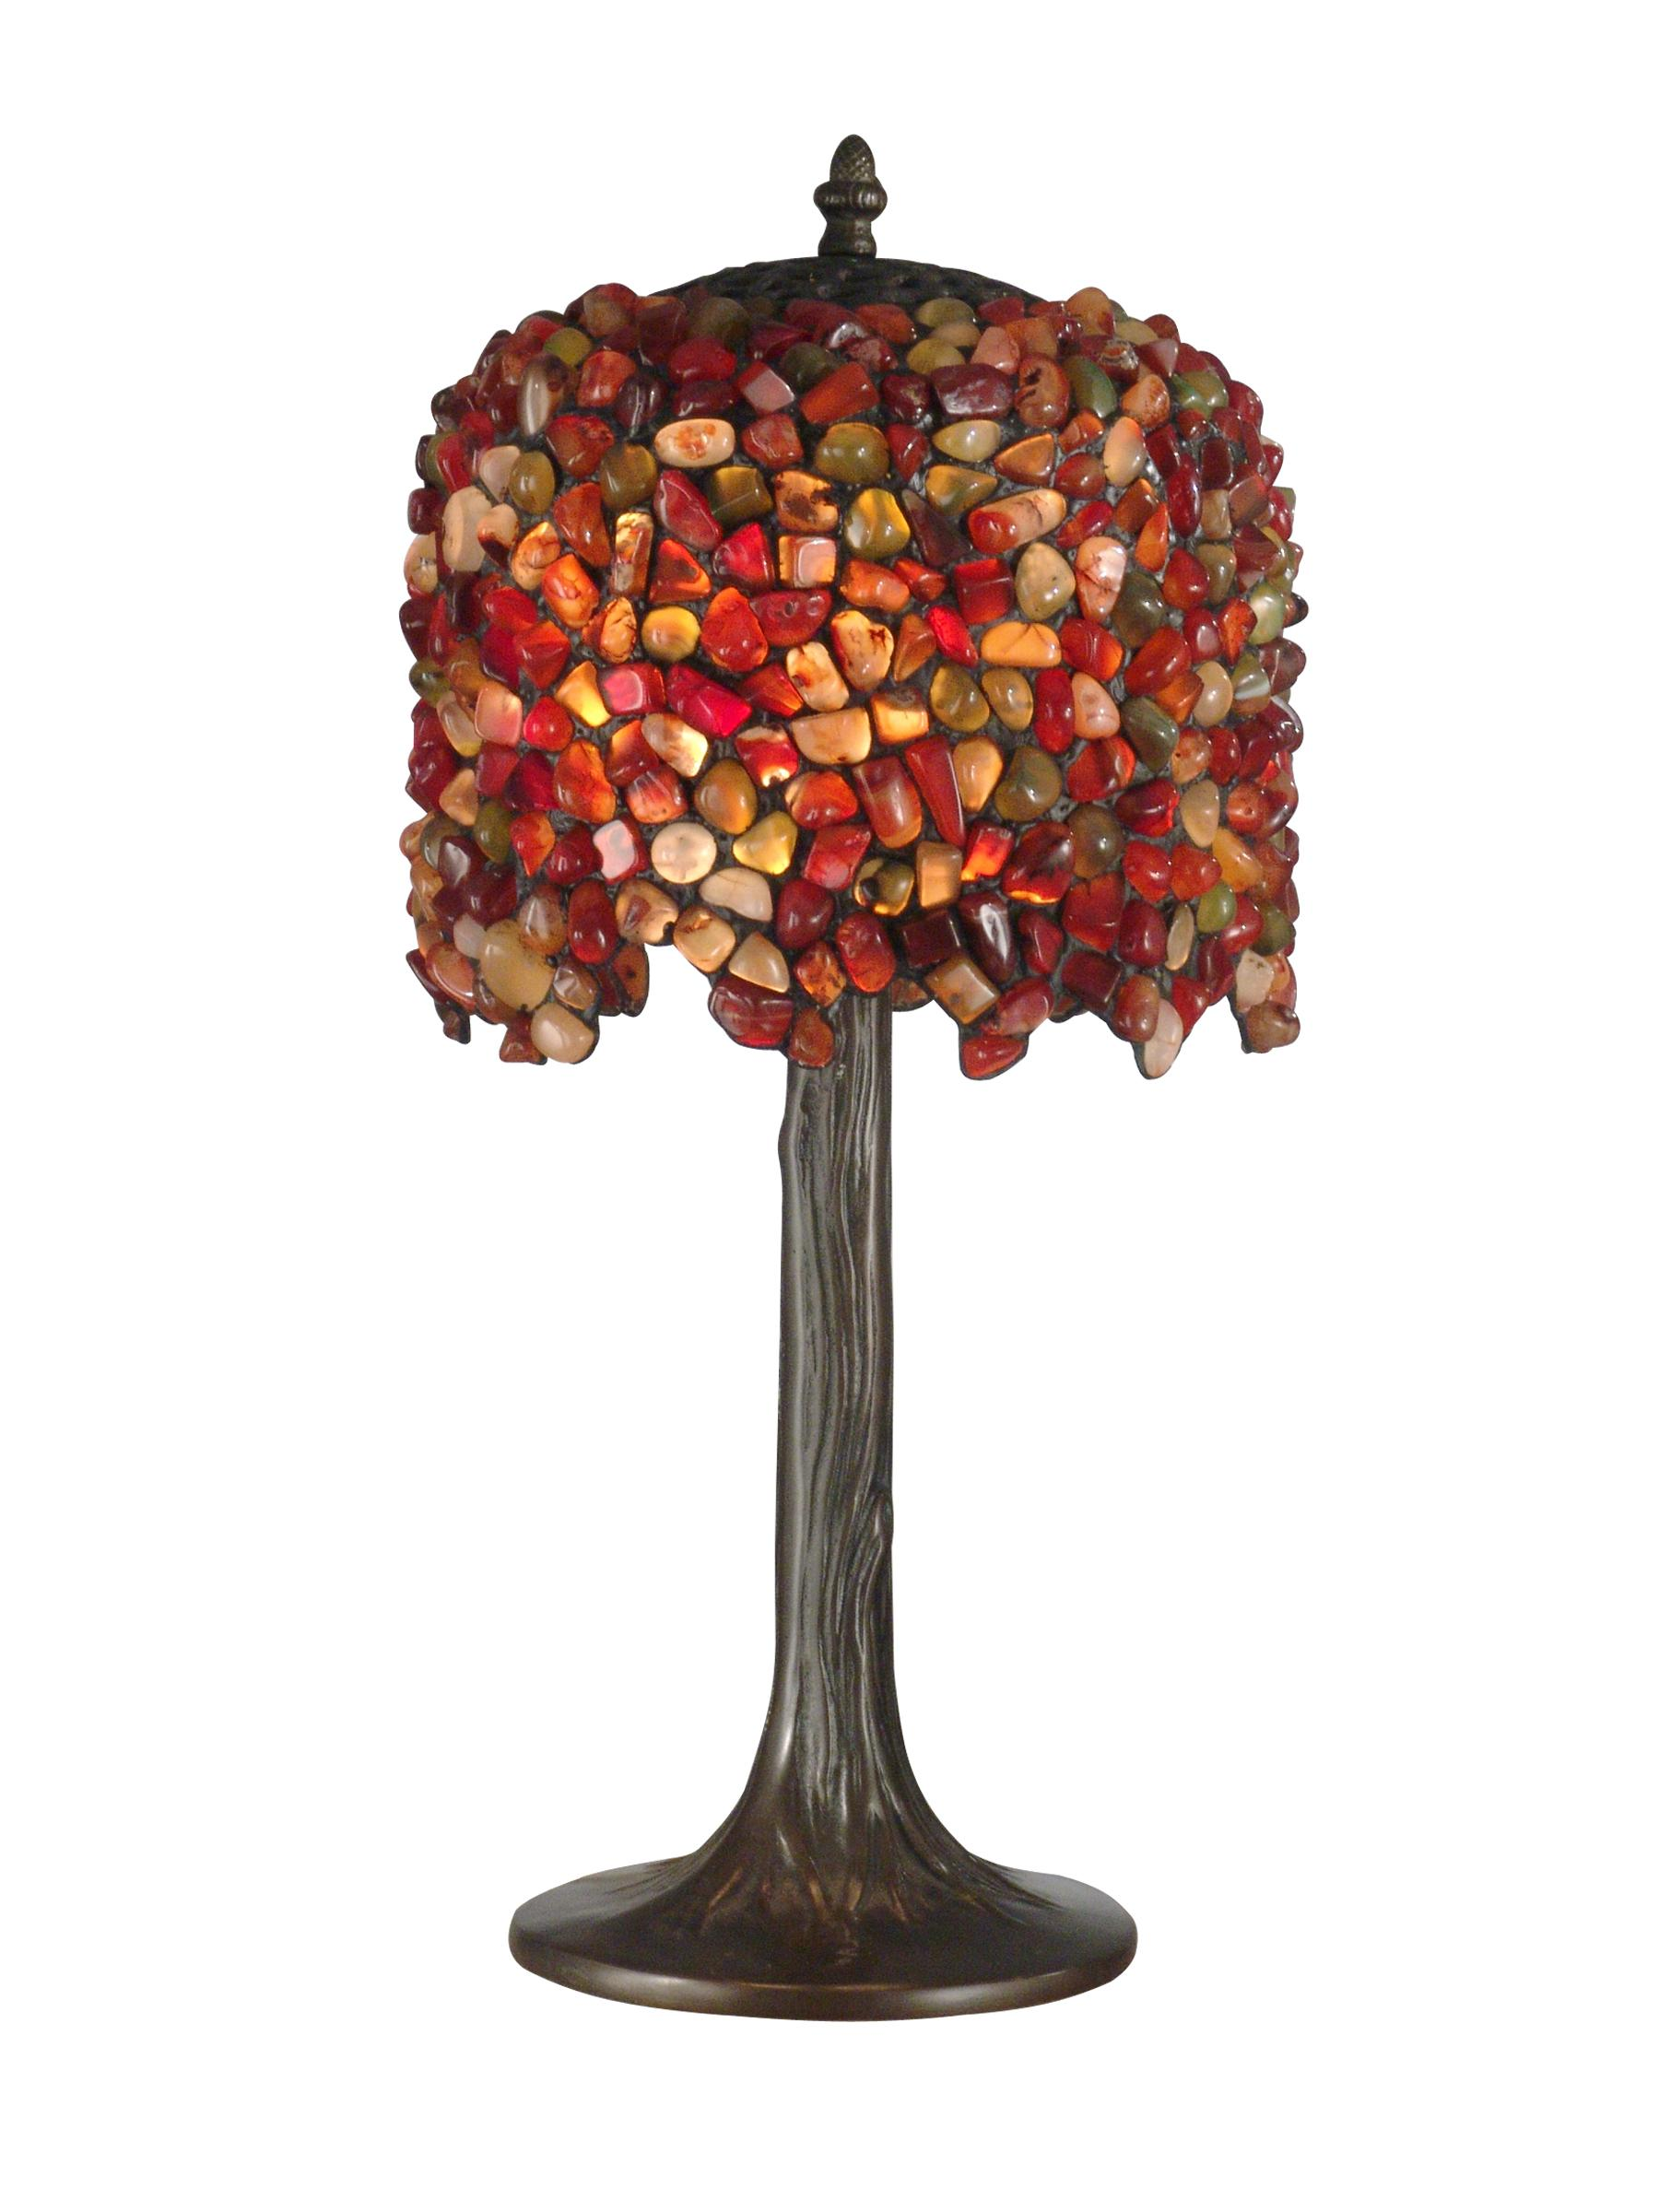 Tiffany art glass pebble stone table lamp dale tiffany dale tiffany tiffany art glass pebble stone table lamp antique bronze finish search results aloadofball Images